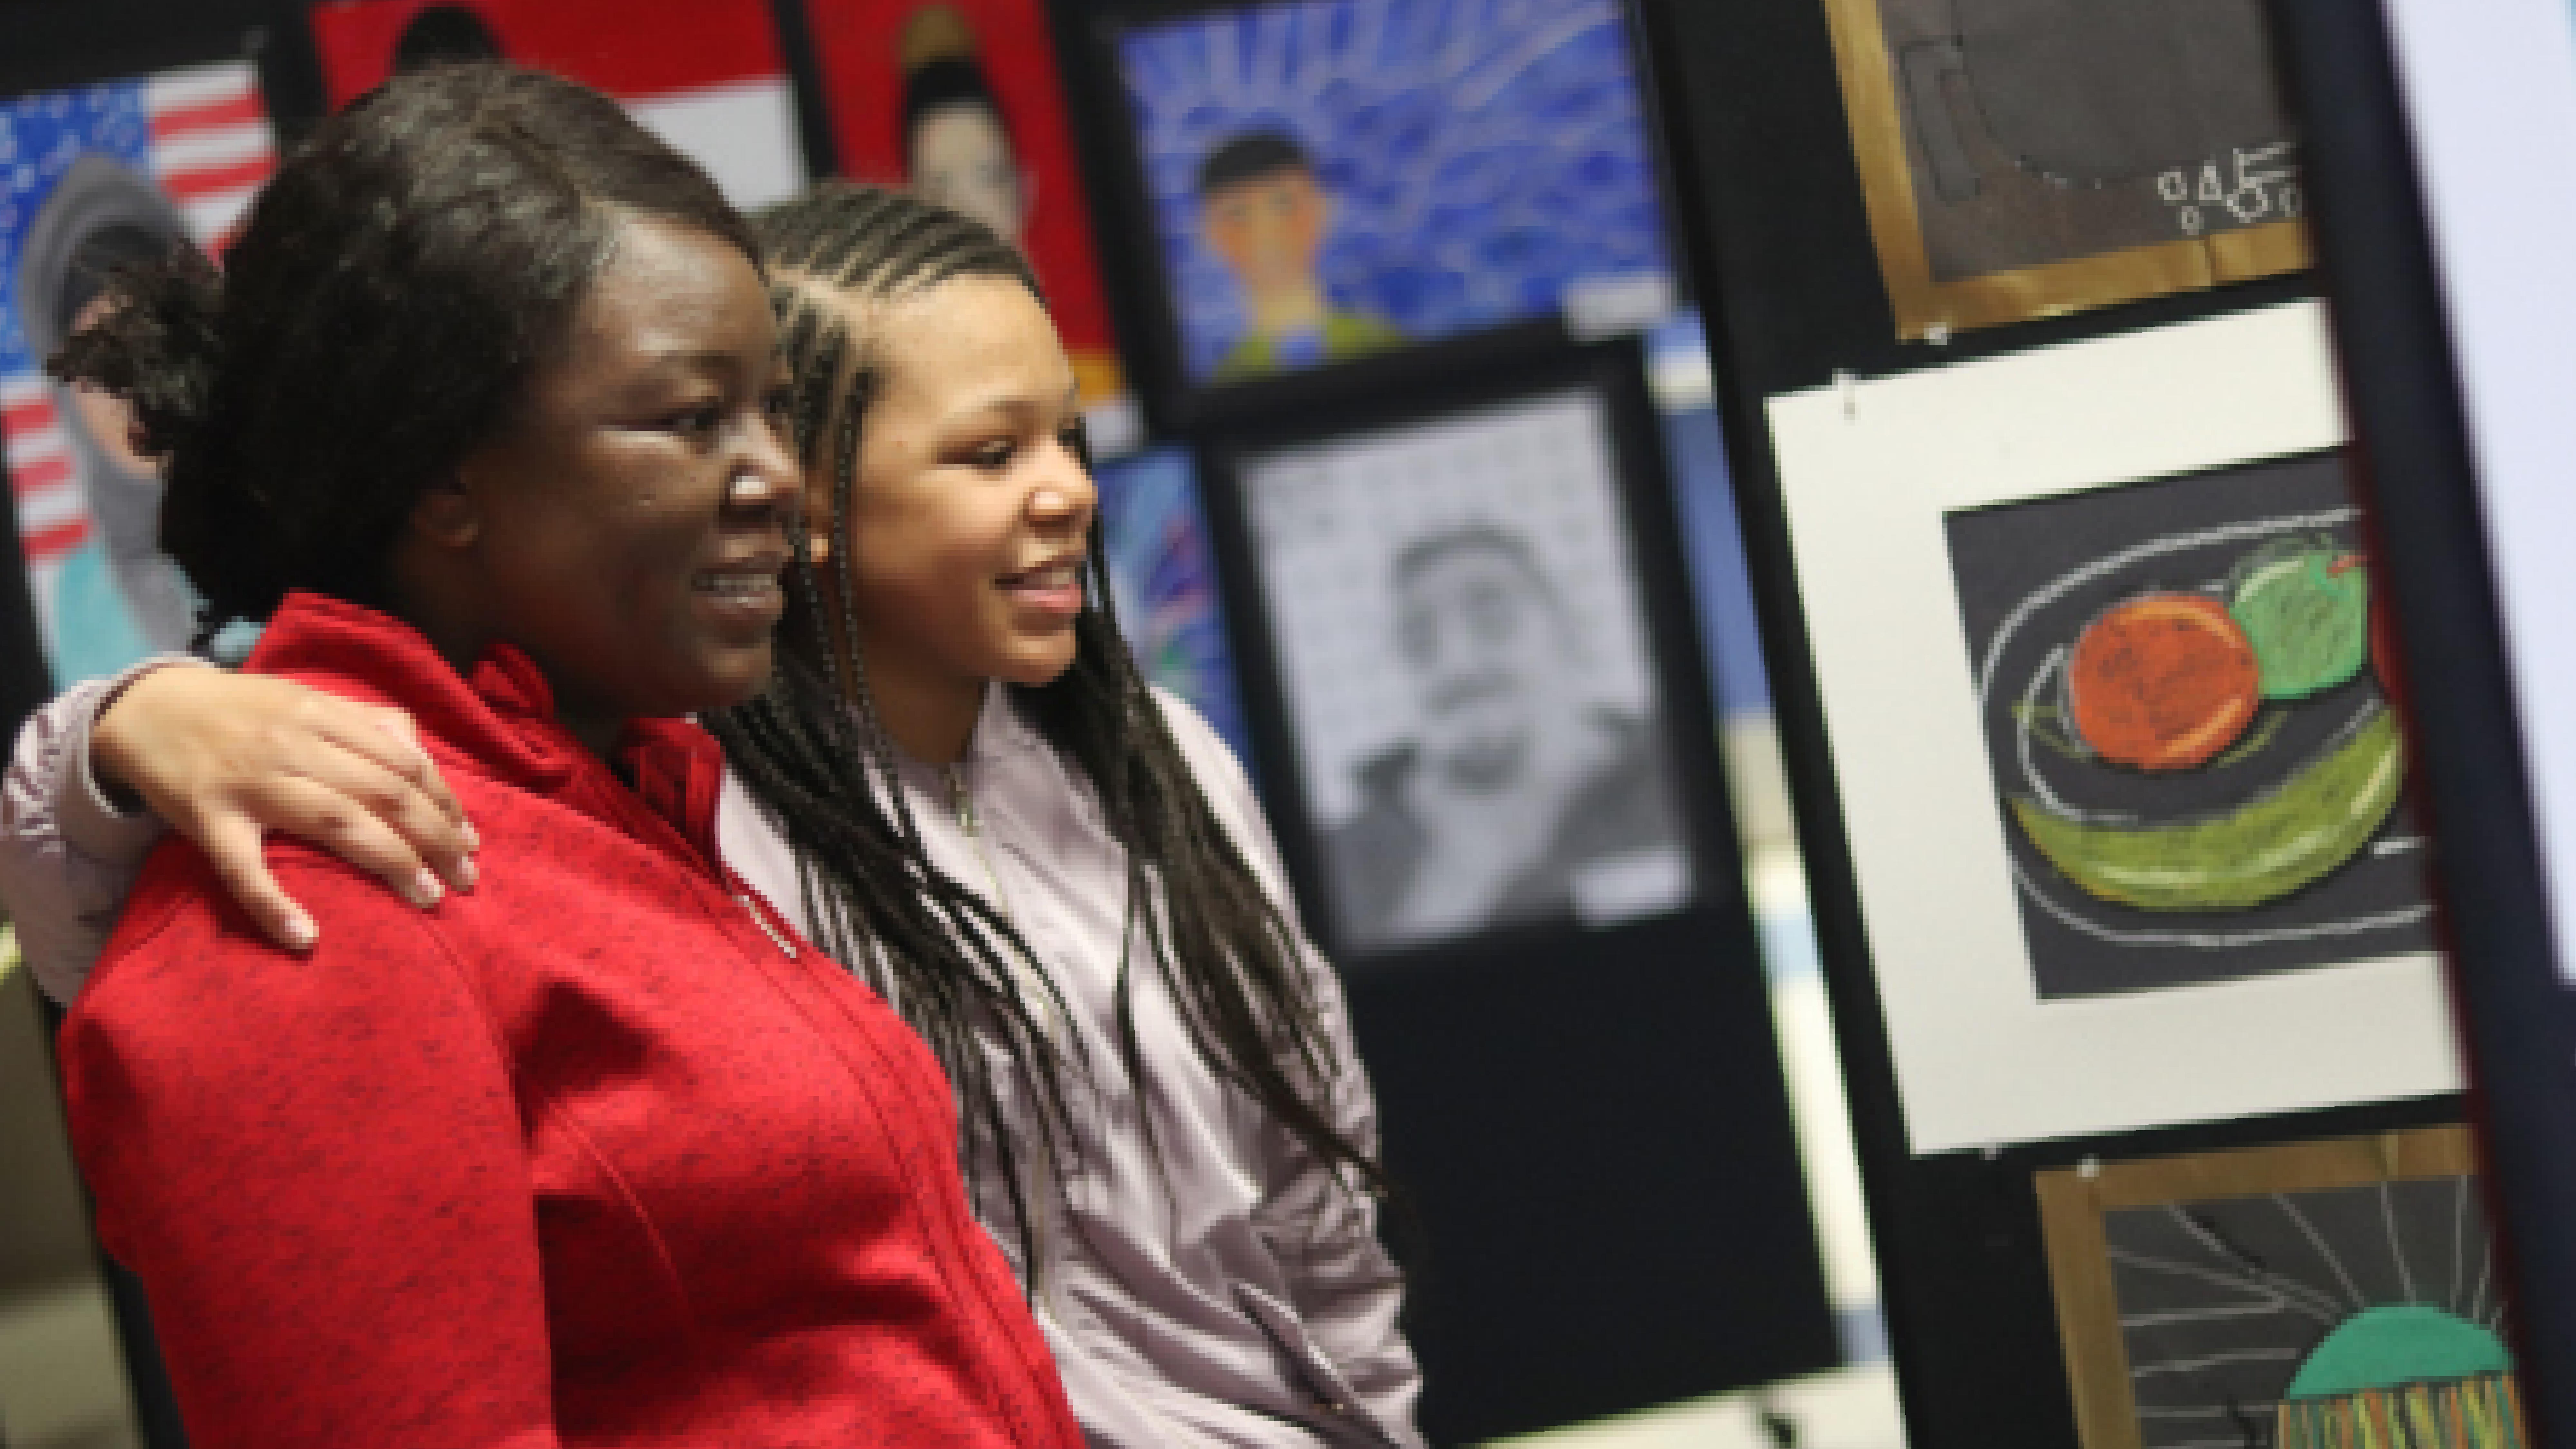 Female student and her mother admiring artwork at an exhibition.